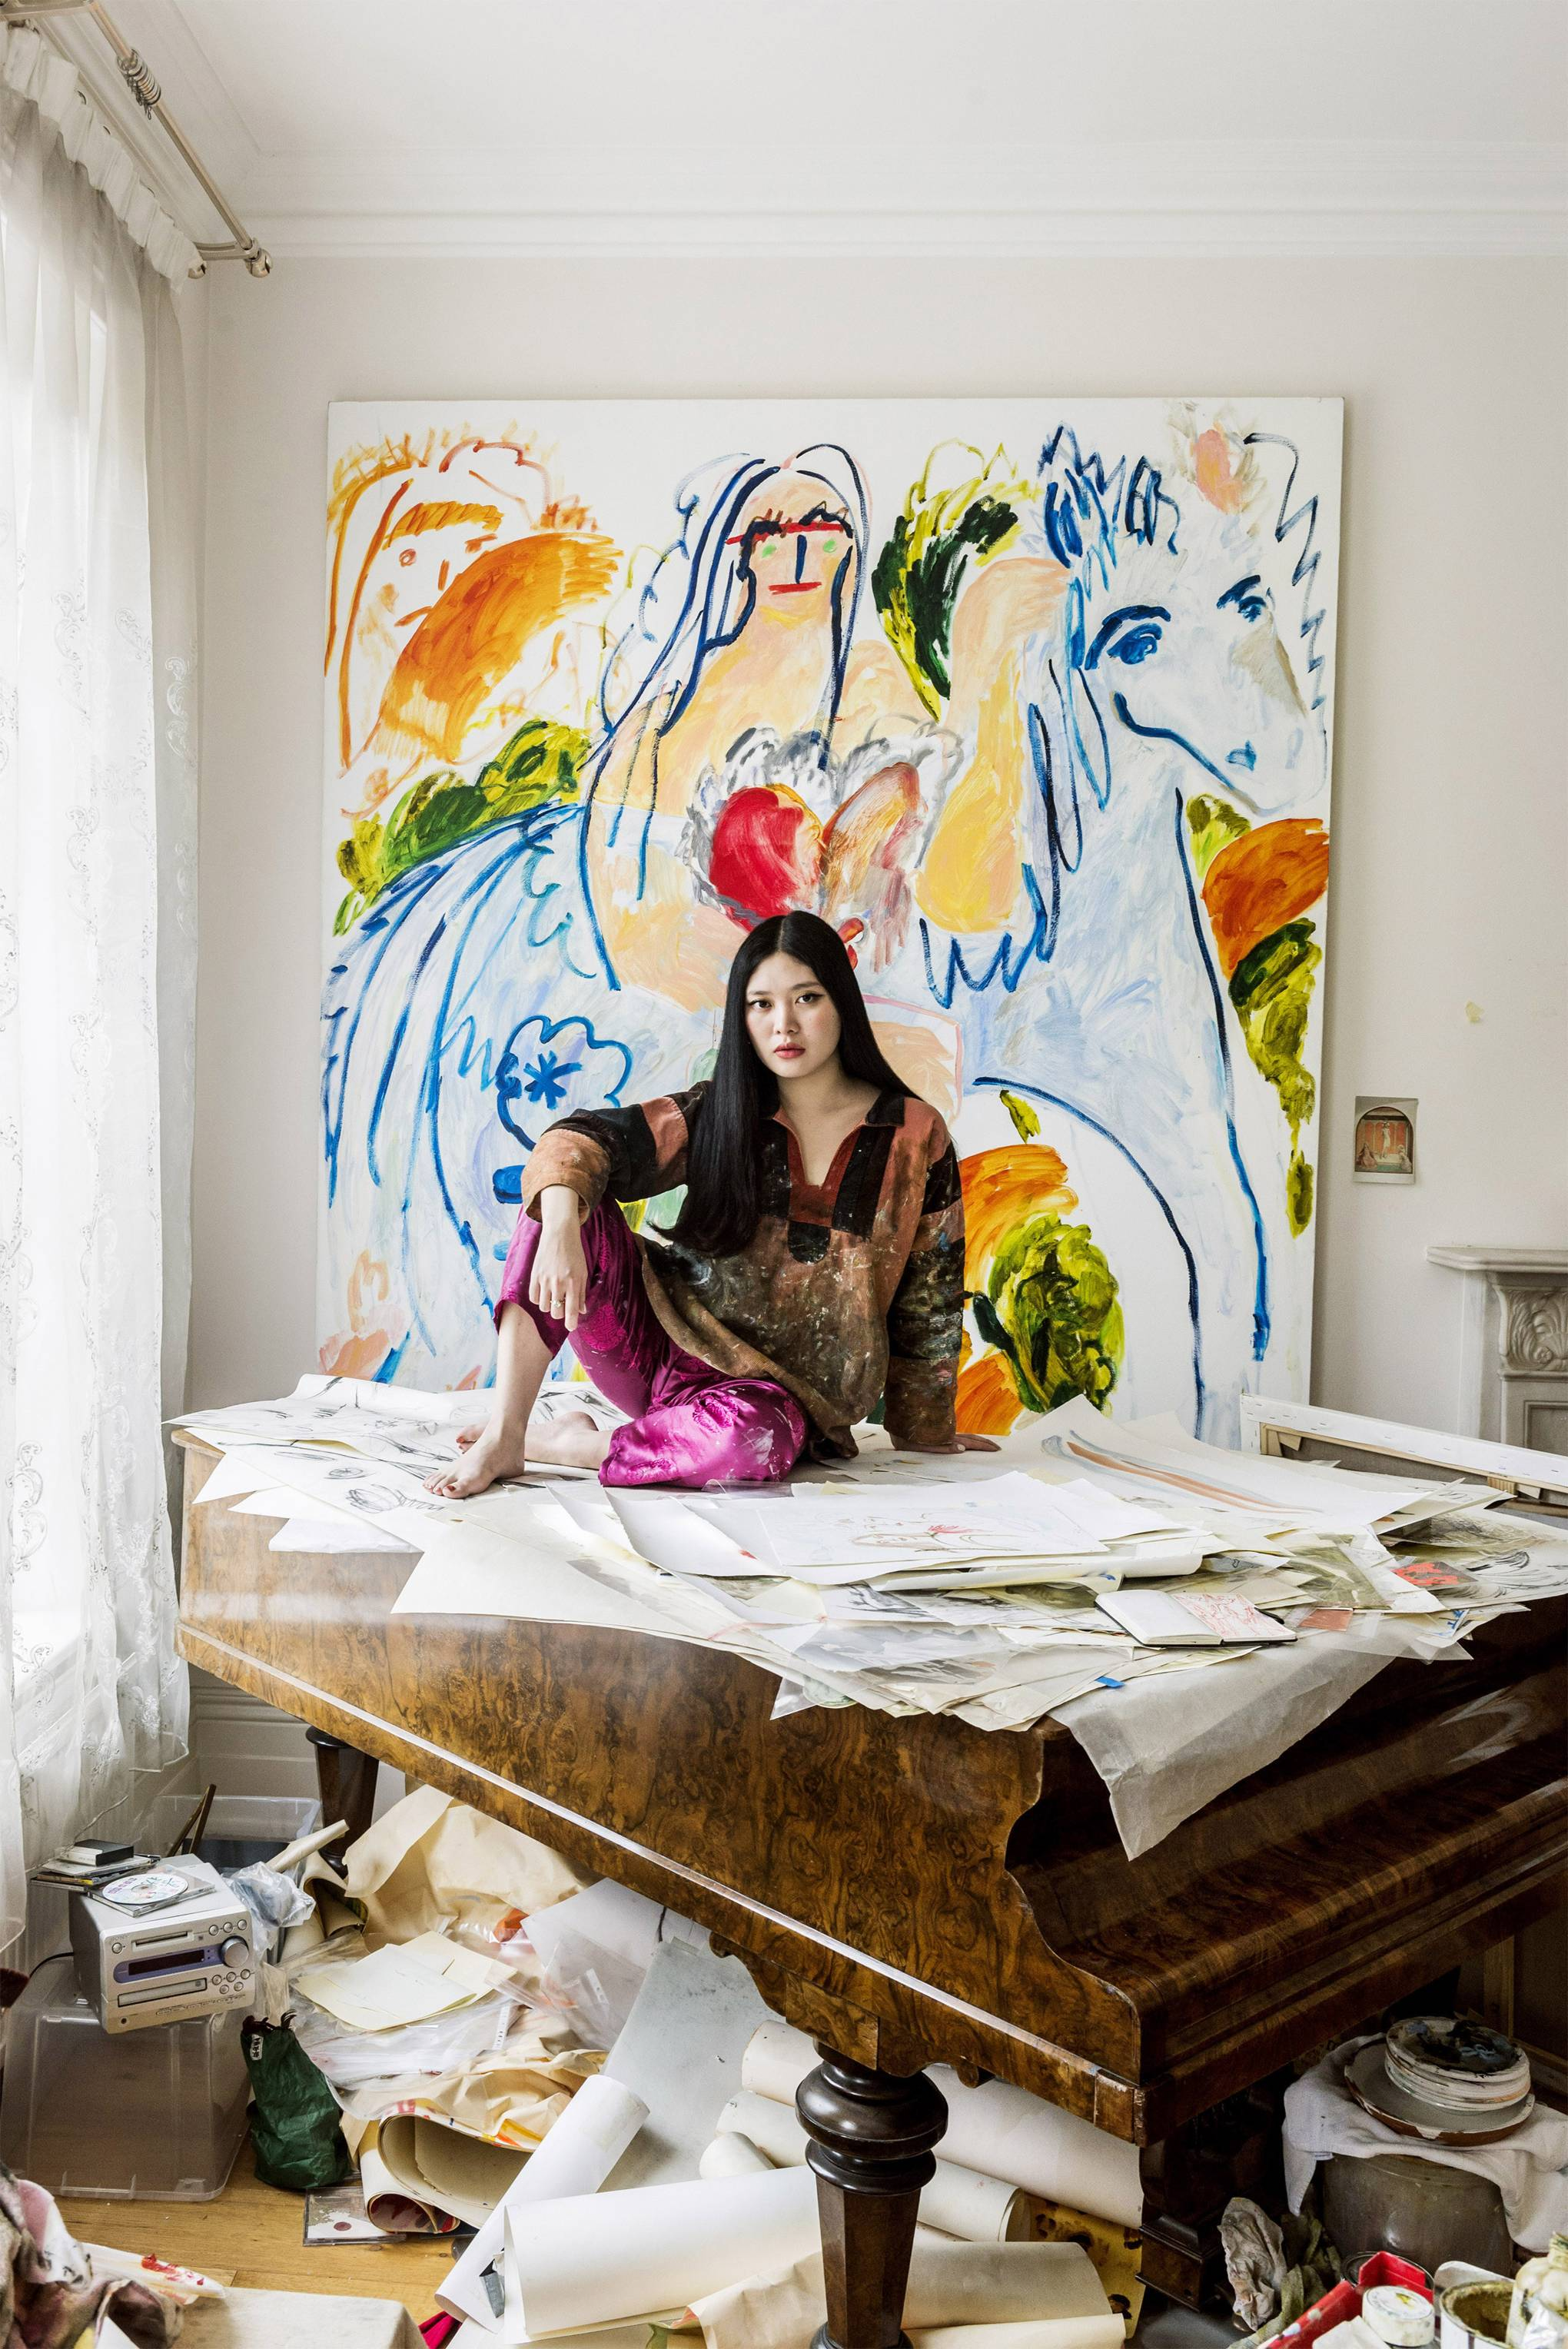 Artists in their studios: Faye Wei Wei's poetic, dream world